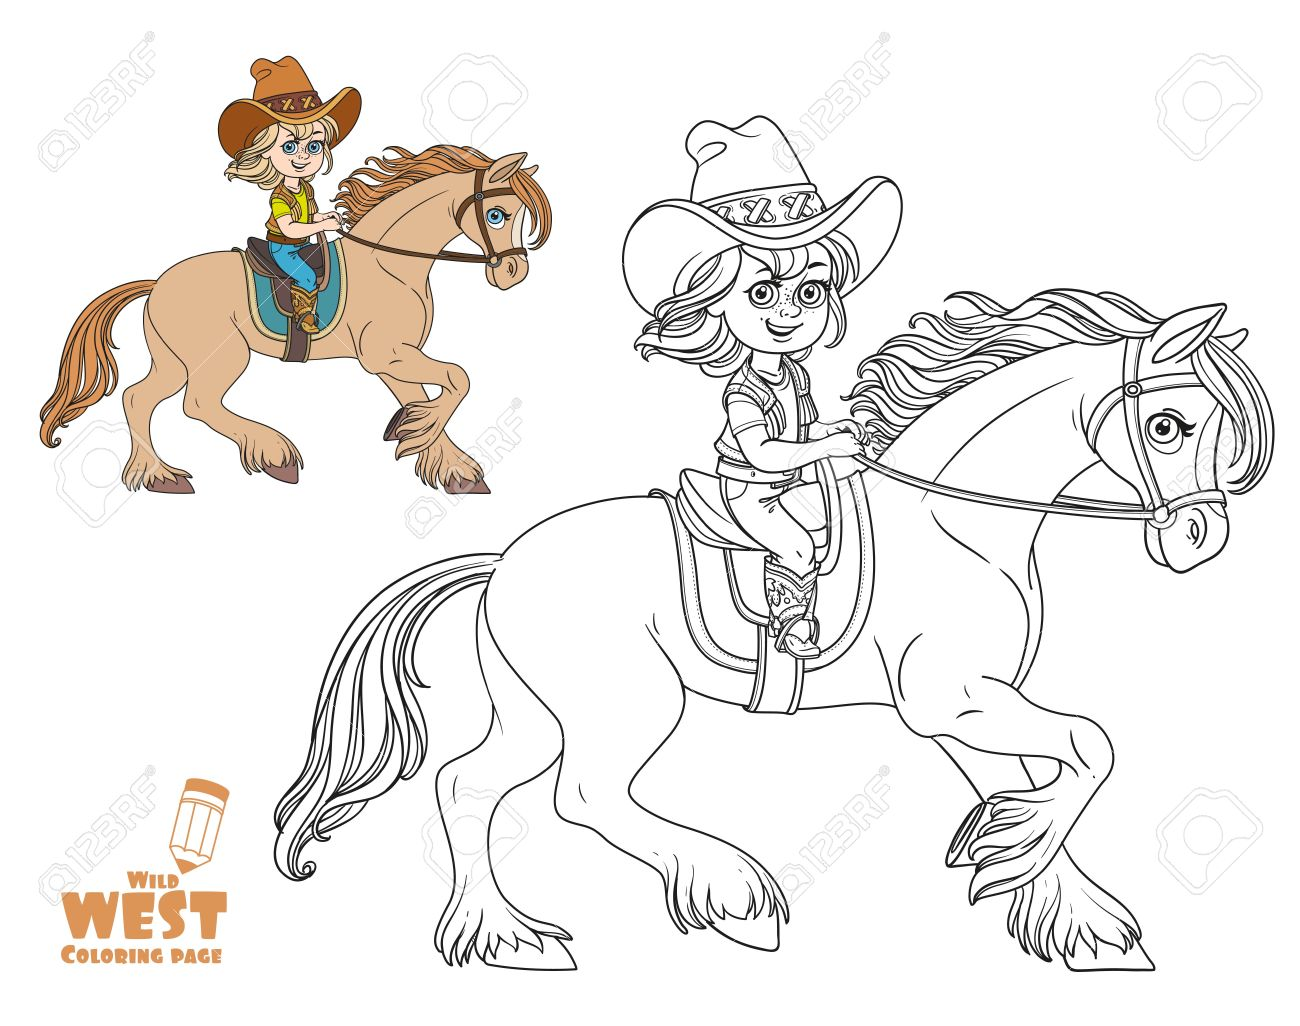 1300x1026 Cute Little Girl In A Cowboy Suit Riding A Horse Coloring Page